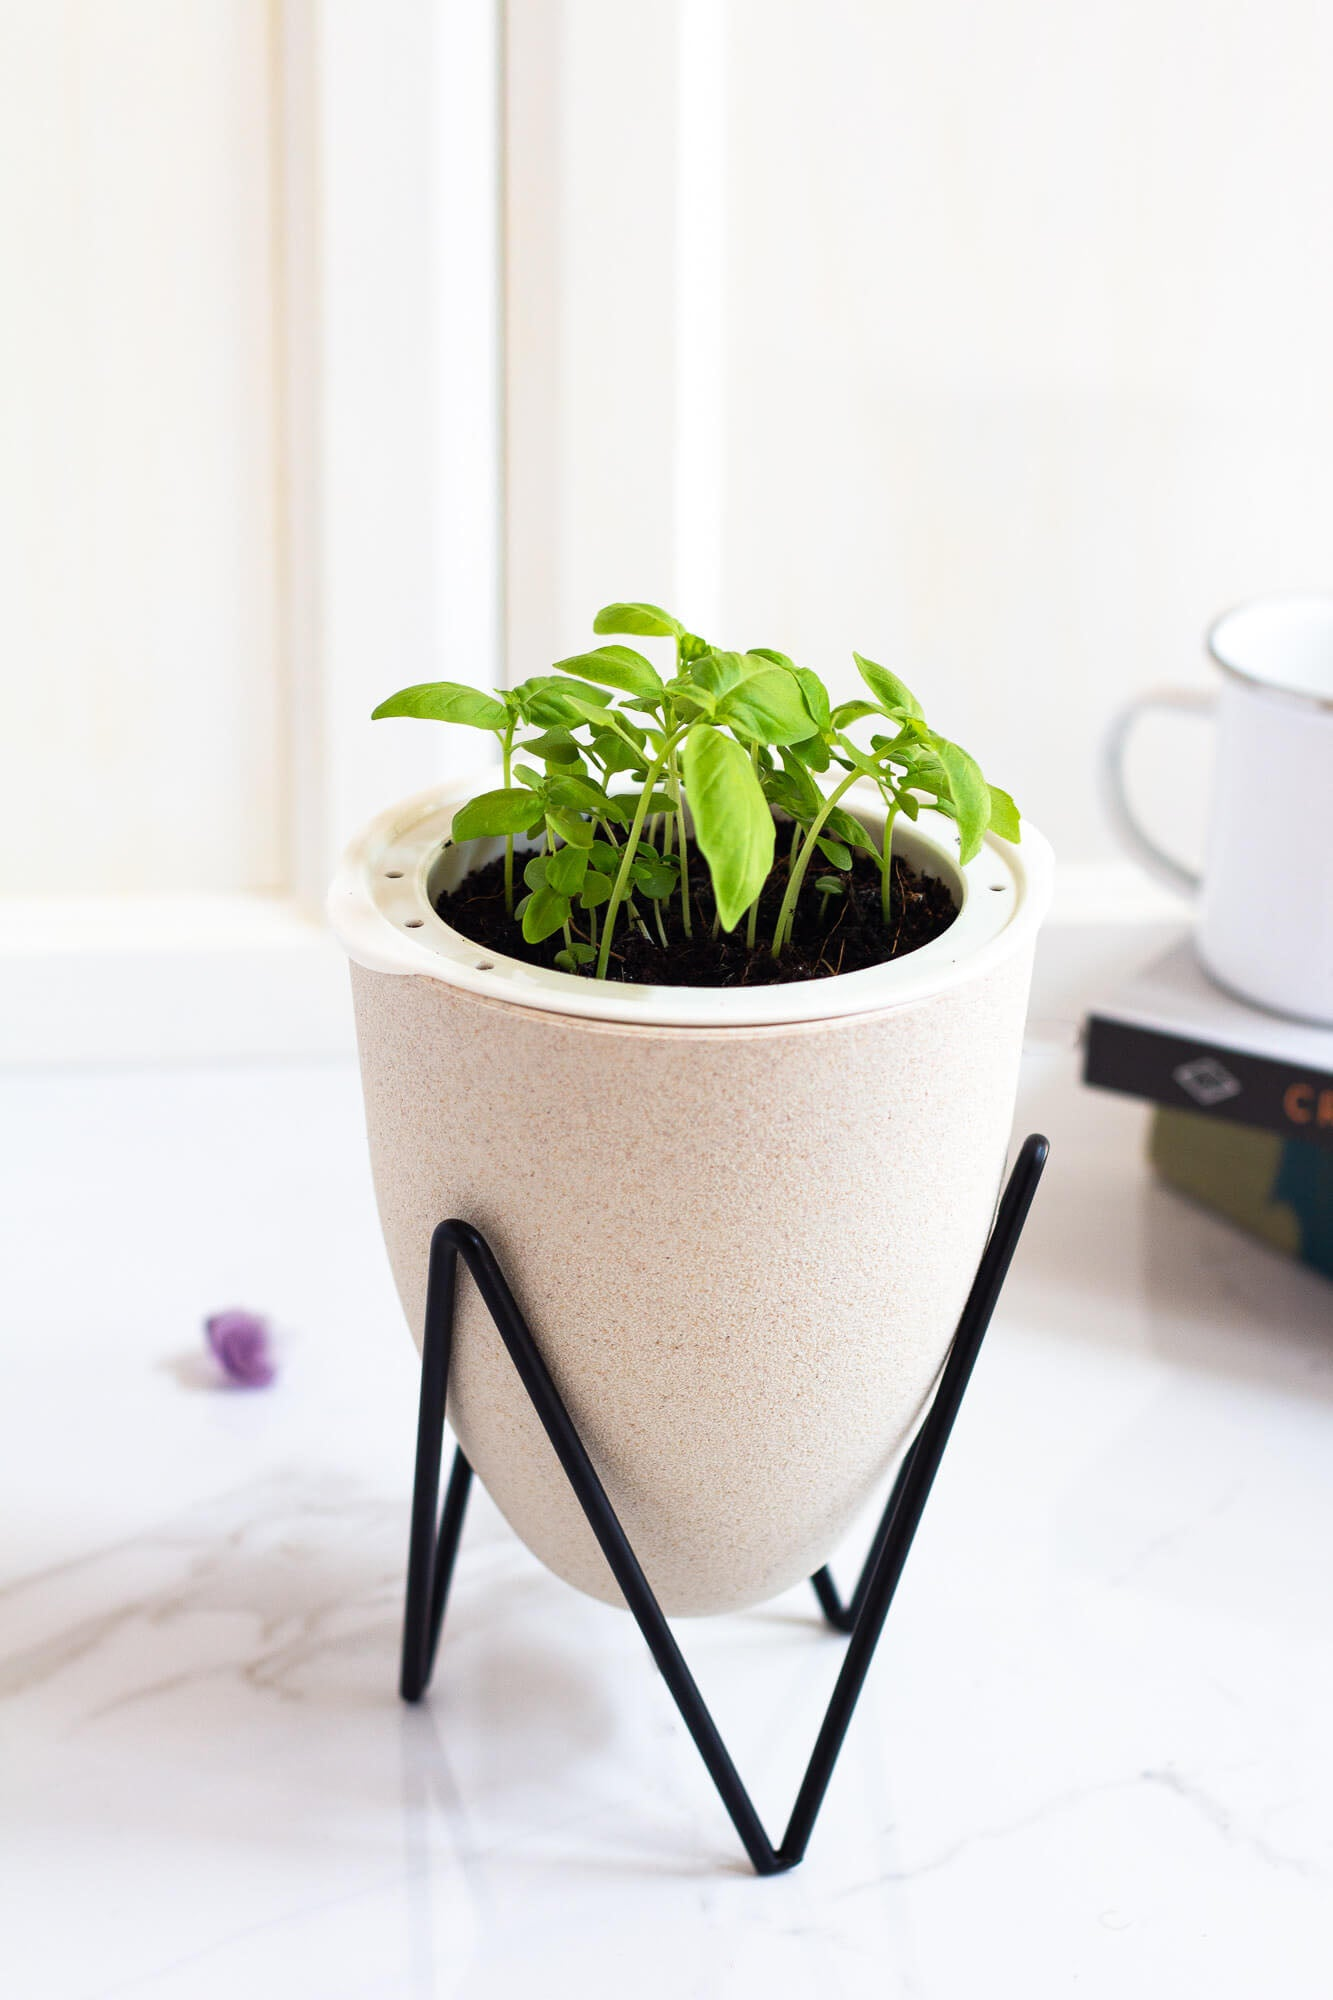 House of Aster Basil Self Watering Planter Indoor Herb Garden Kit Hydroponic System Beige